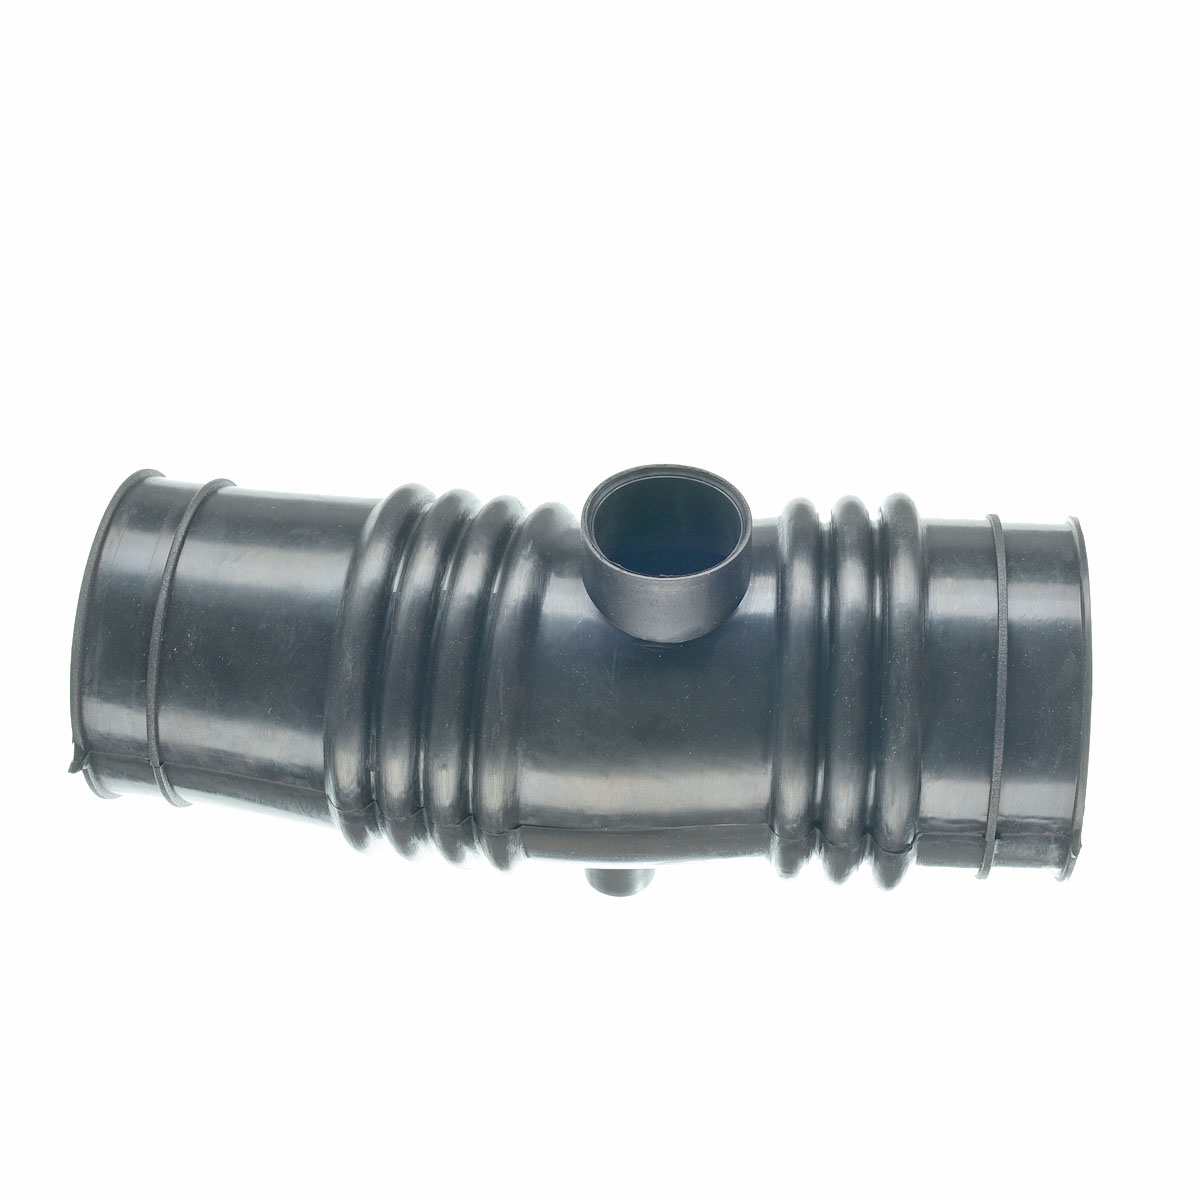 air intake hose tube for toyota camry avalon 1994 1996 lexus es300 3 0l 1788120070 in air intakes from automobiles motorcycles on aliexpress com alibaba  [ 1200 x 1200 Pixel ]